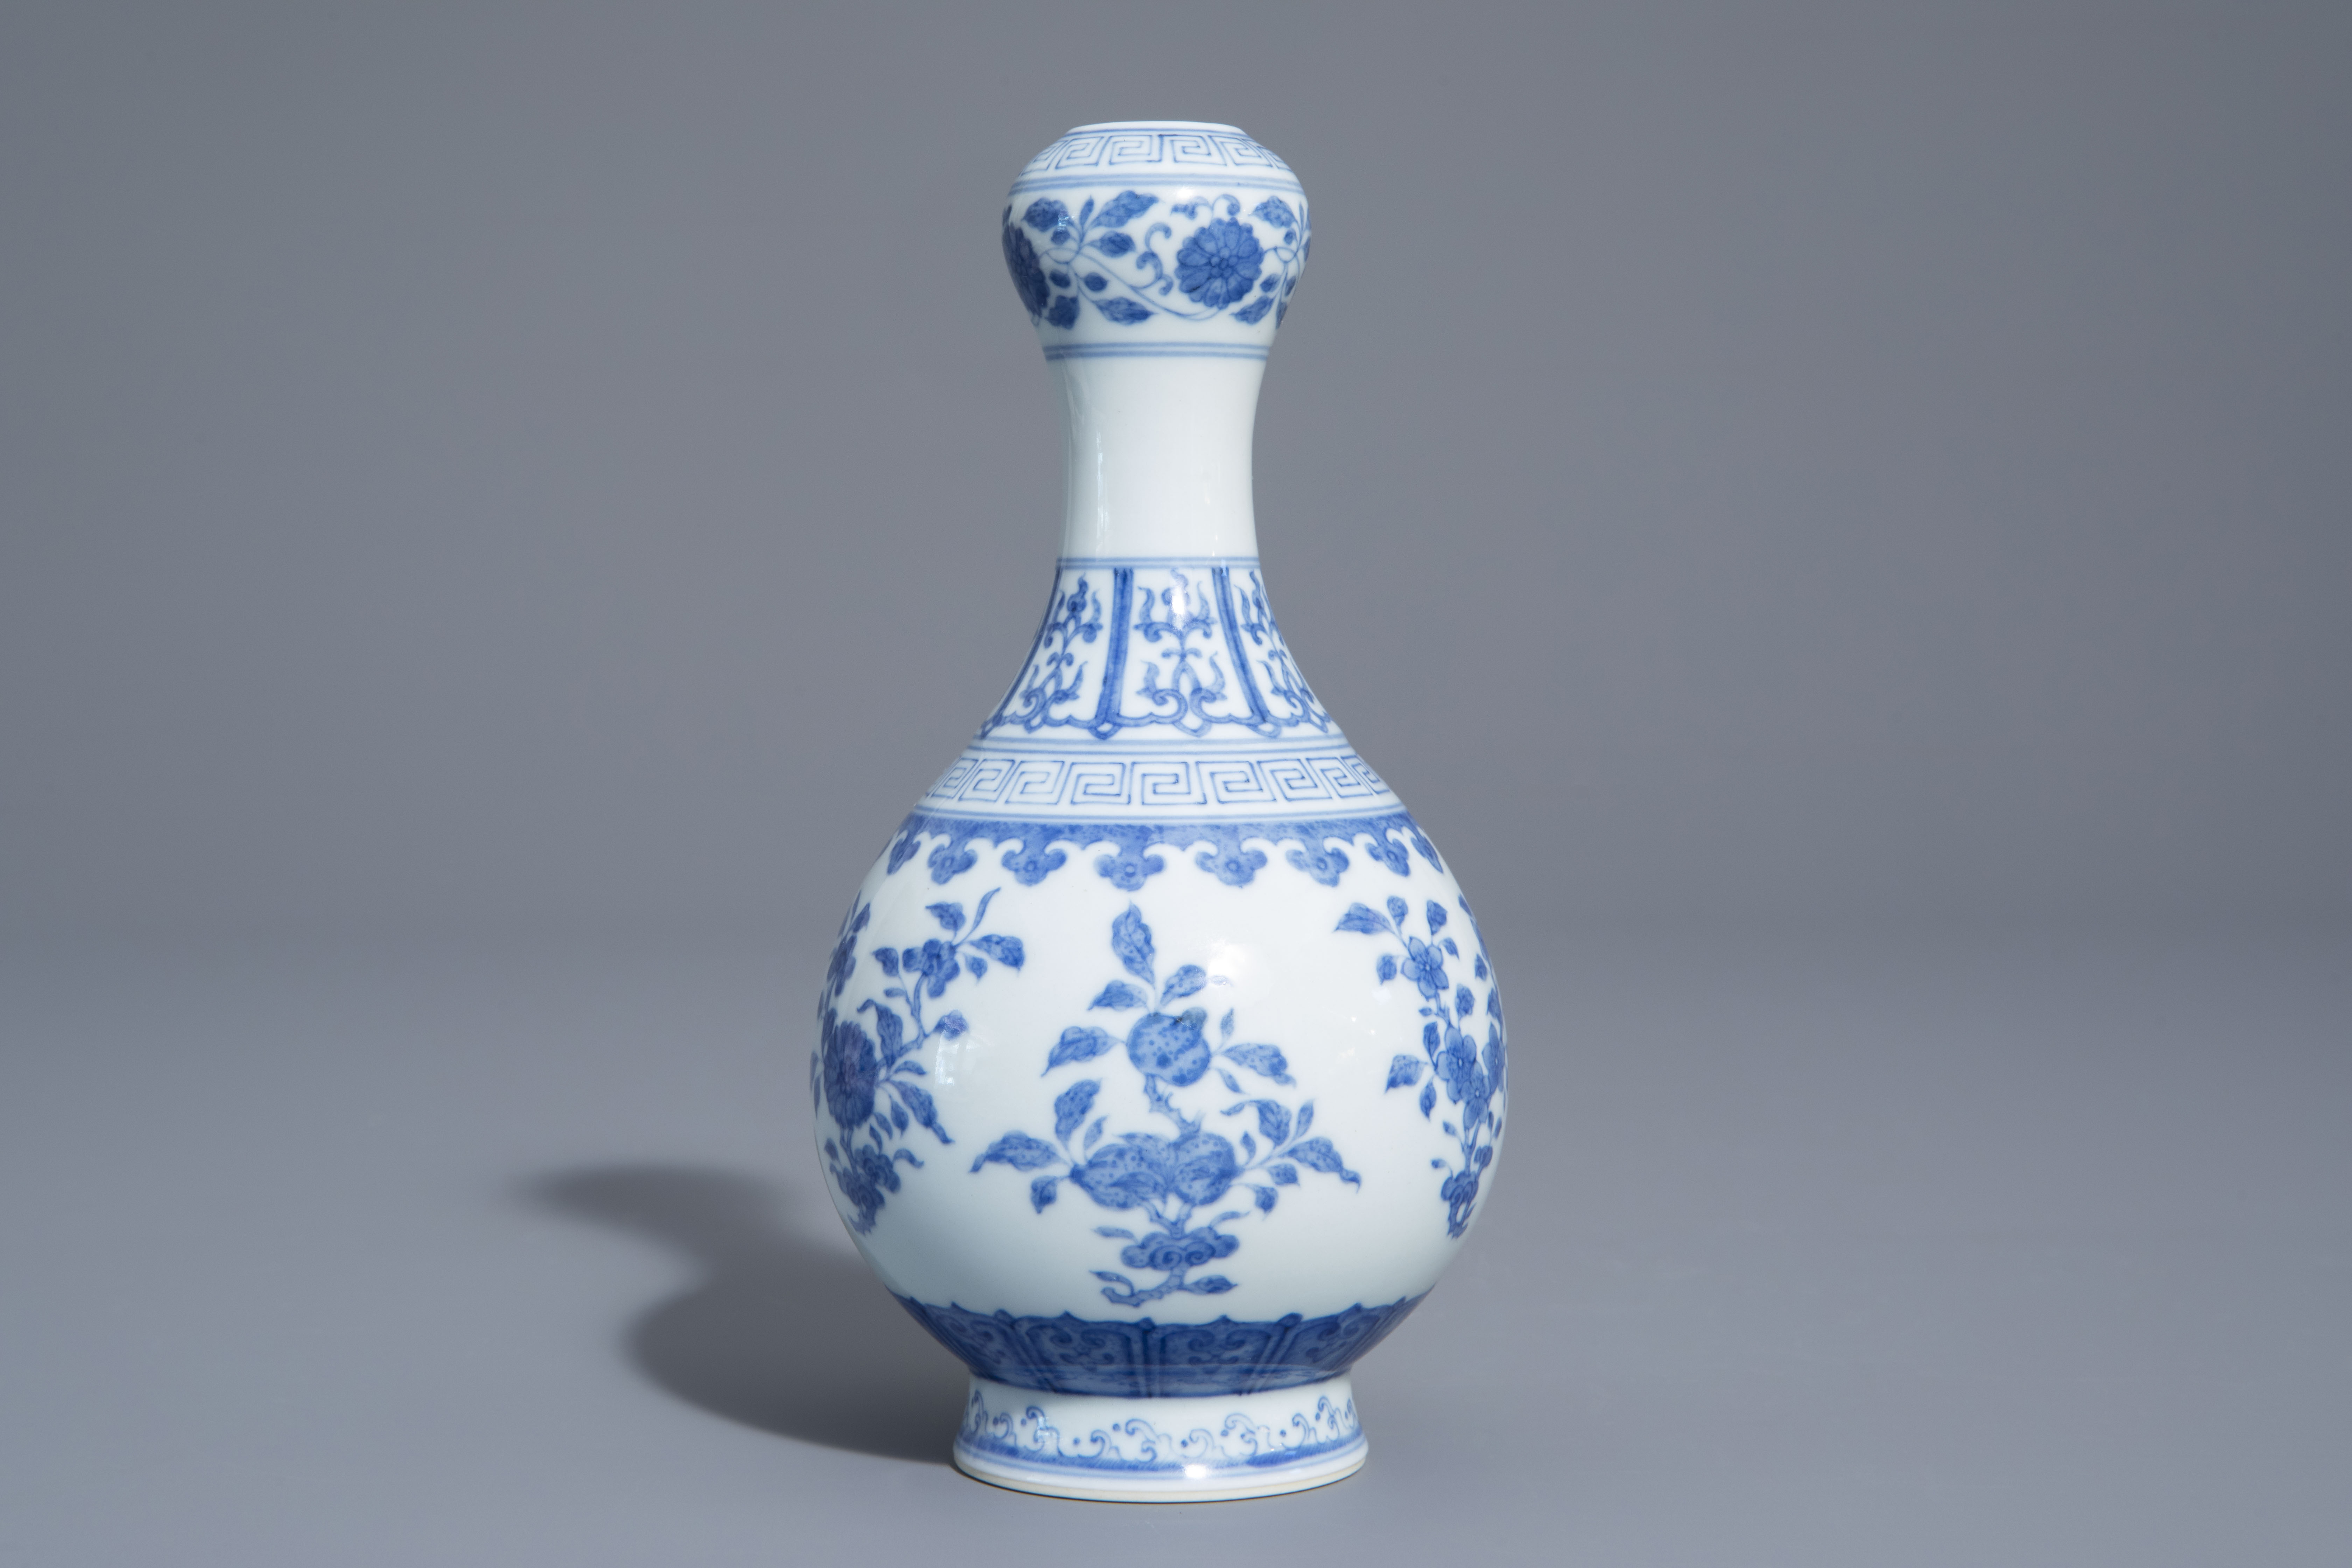 A Chinese blue and white garlic-head mouth vase with floral design, Qianlong mark, 20th C. - Image 4 of 7